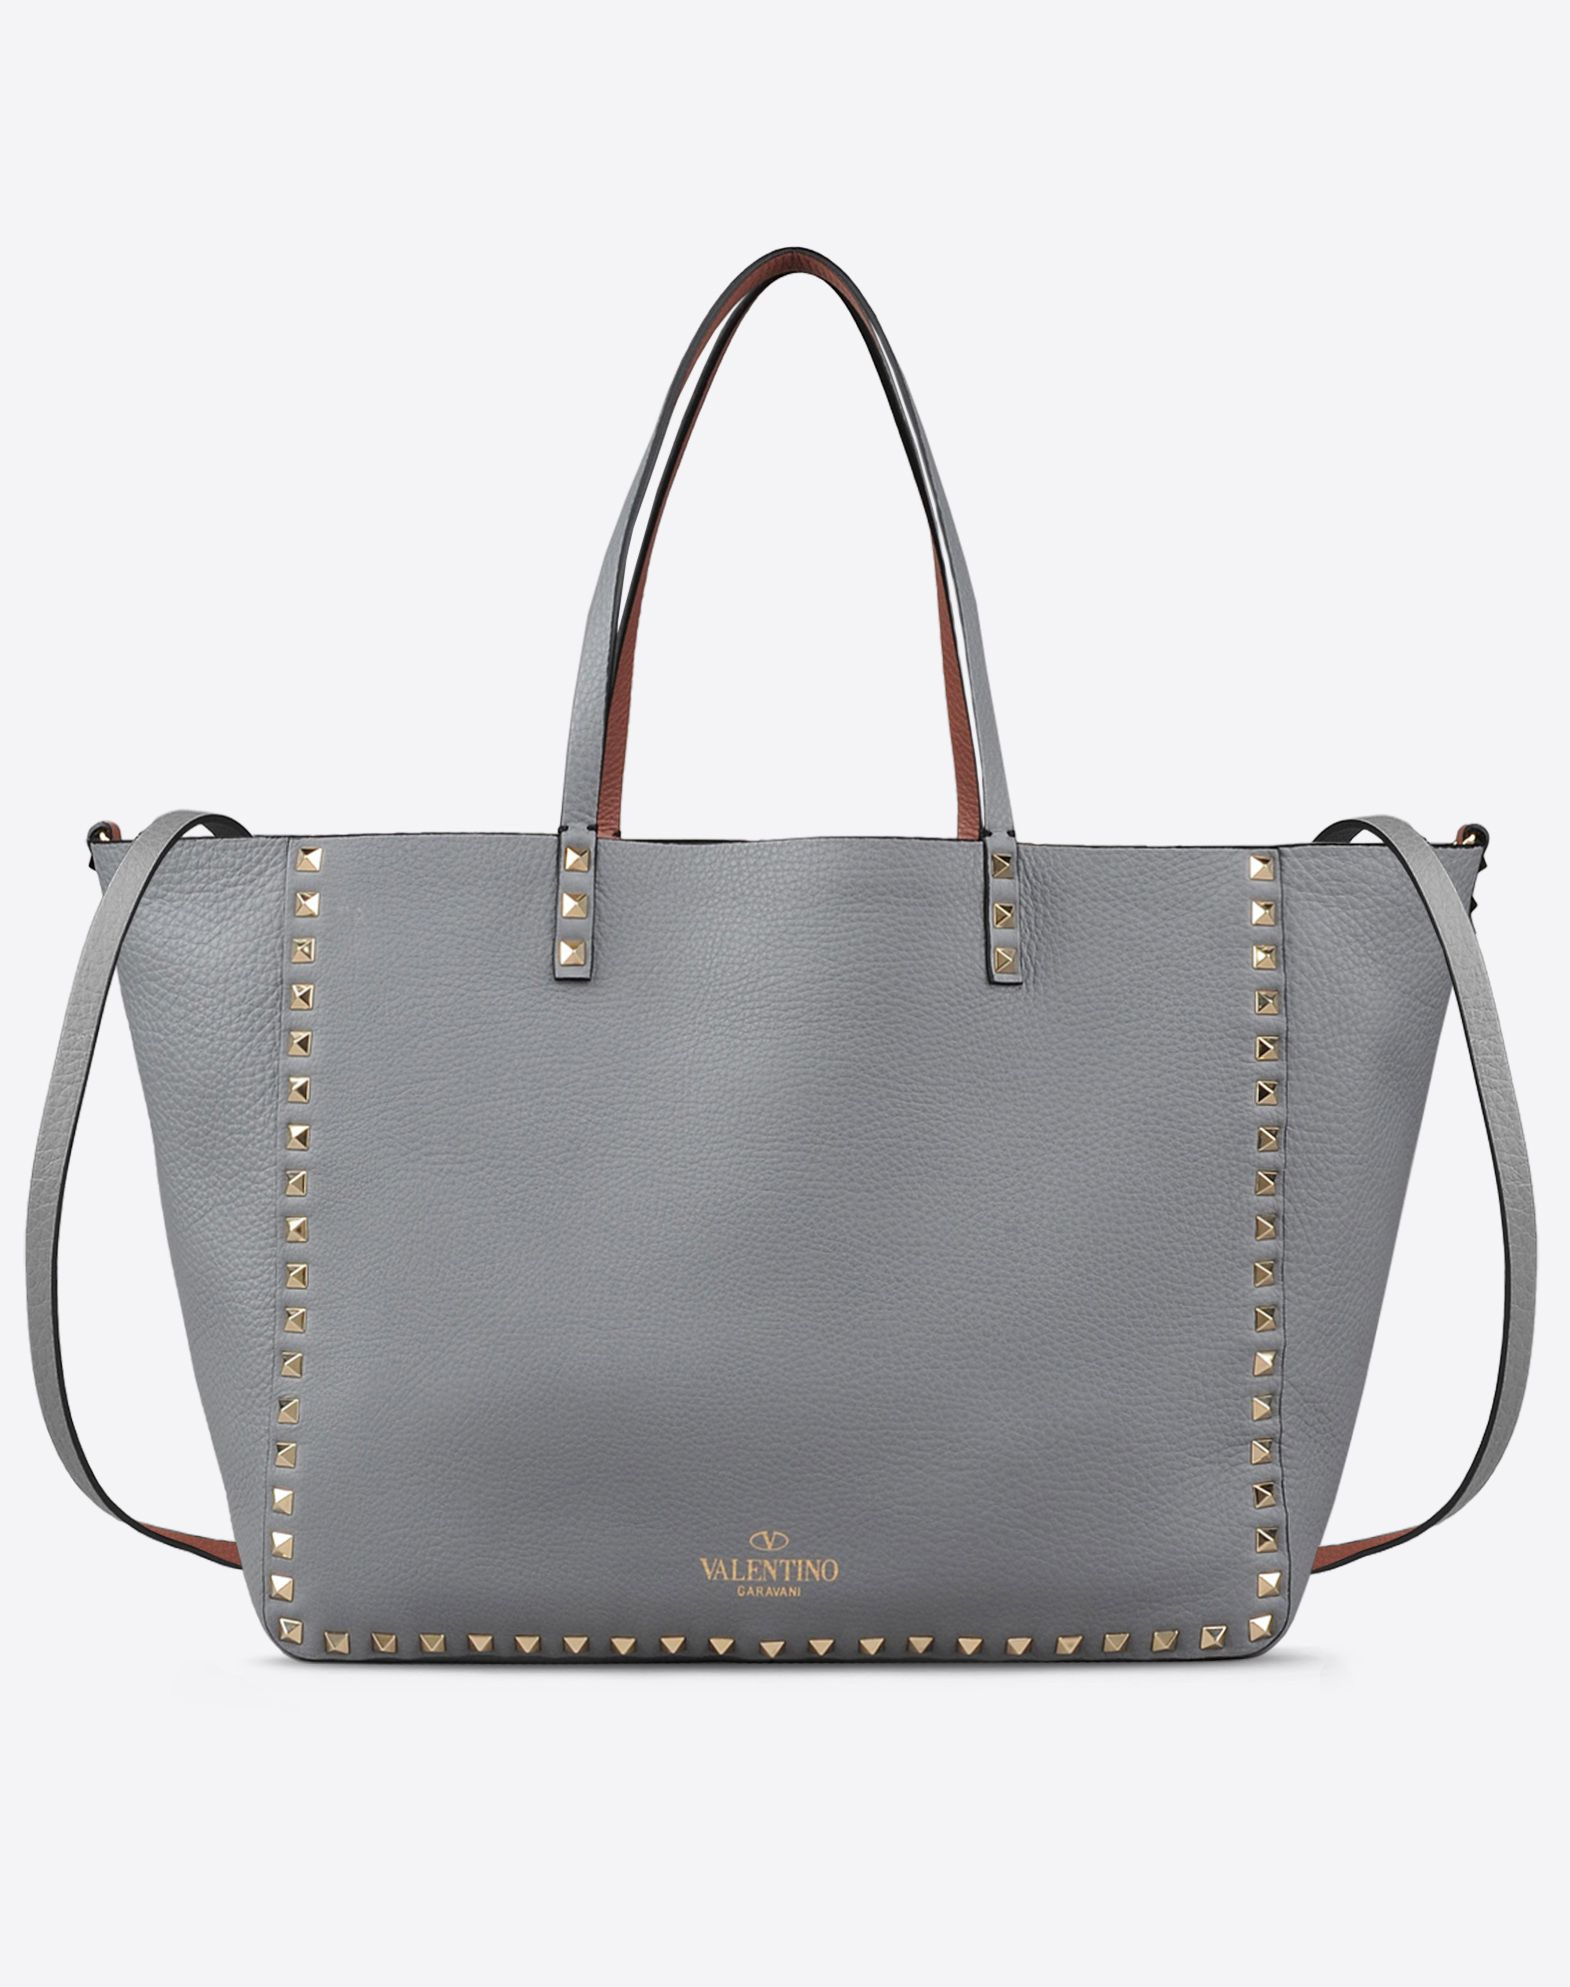 VALENTINO Double handle Logo detail Studs Textured leather Solid color Removable shoulder strap  45238027jl